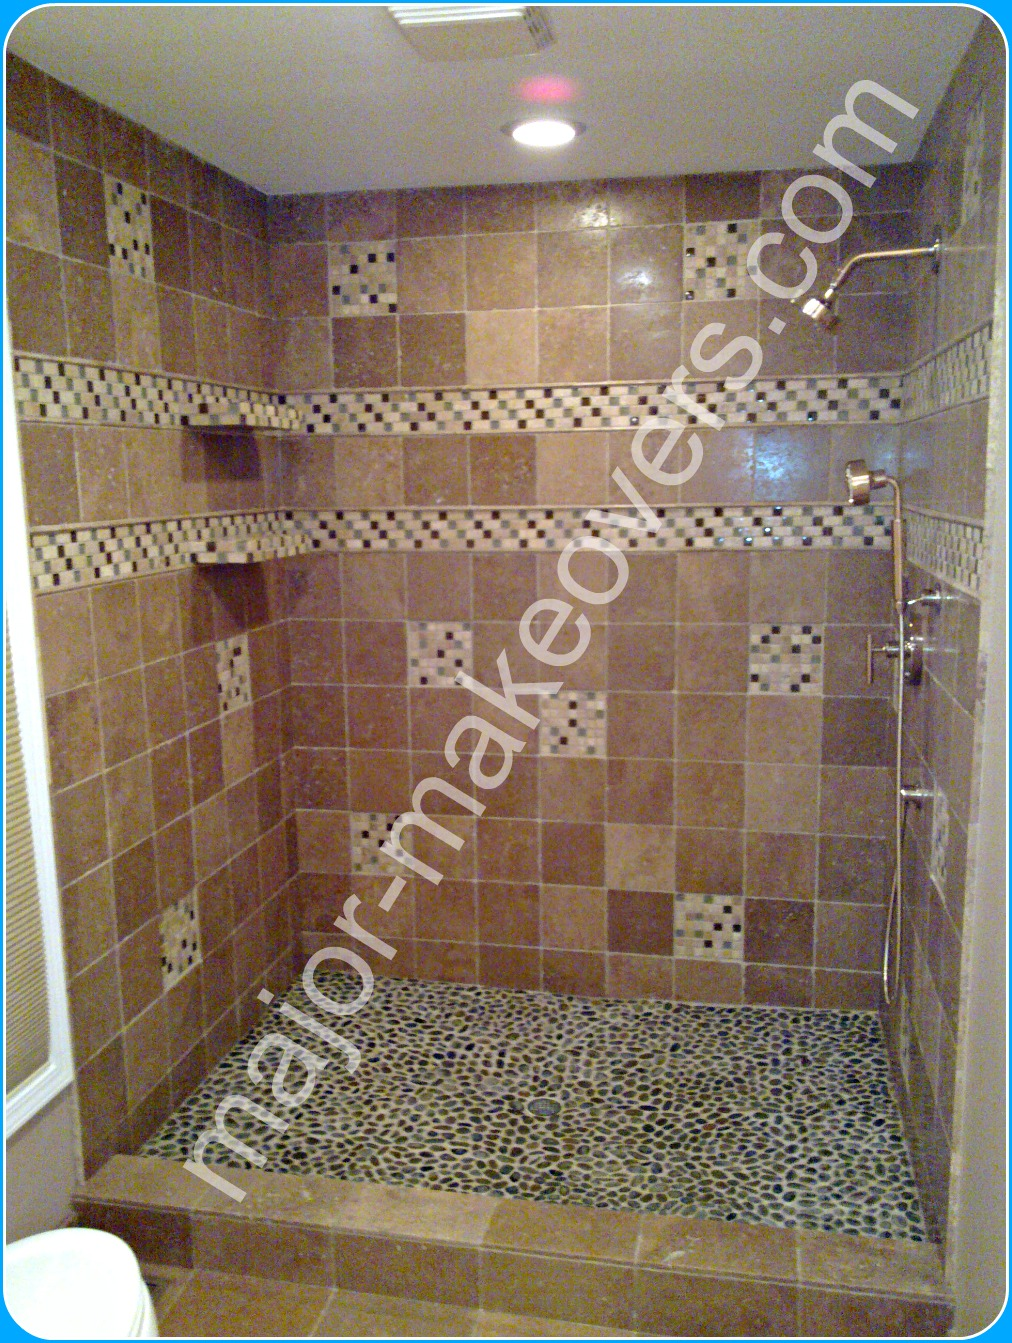 Oak Brook, IL 60523 - Sealed travertine tile installed on shower walls with 2 decorative mosaic and pencil tile lines - round pebble tile on shower floor and two 6x18 in. custom shower dishes/shelves.